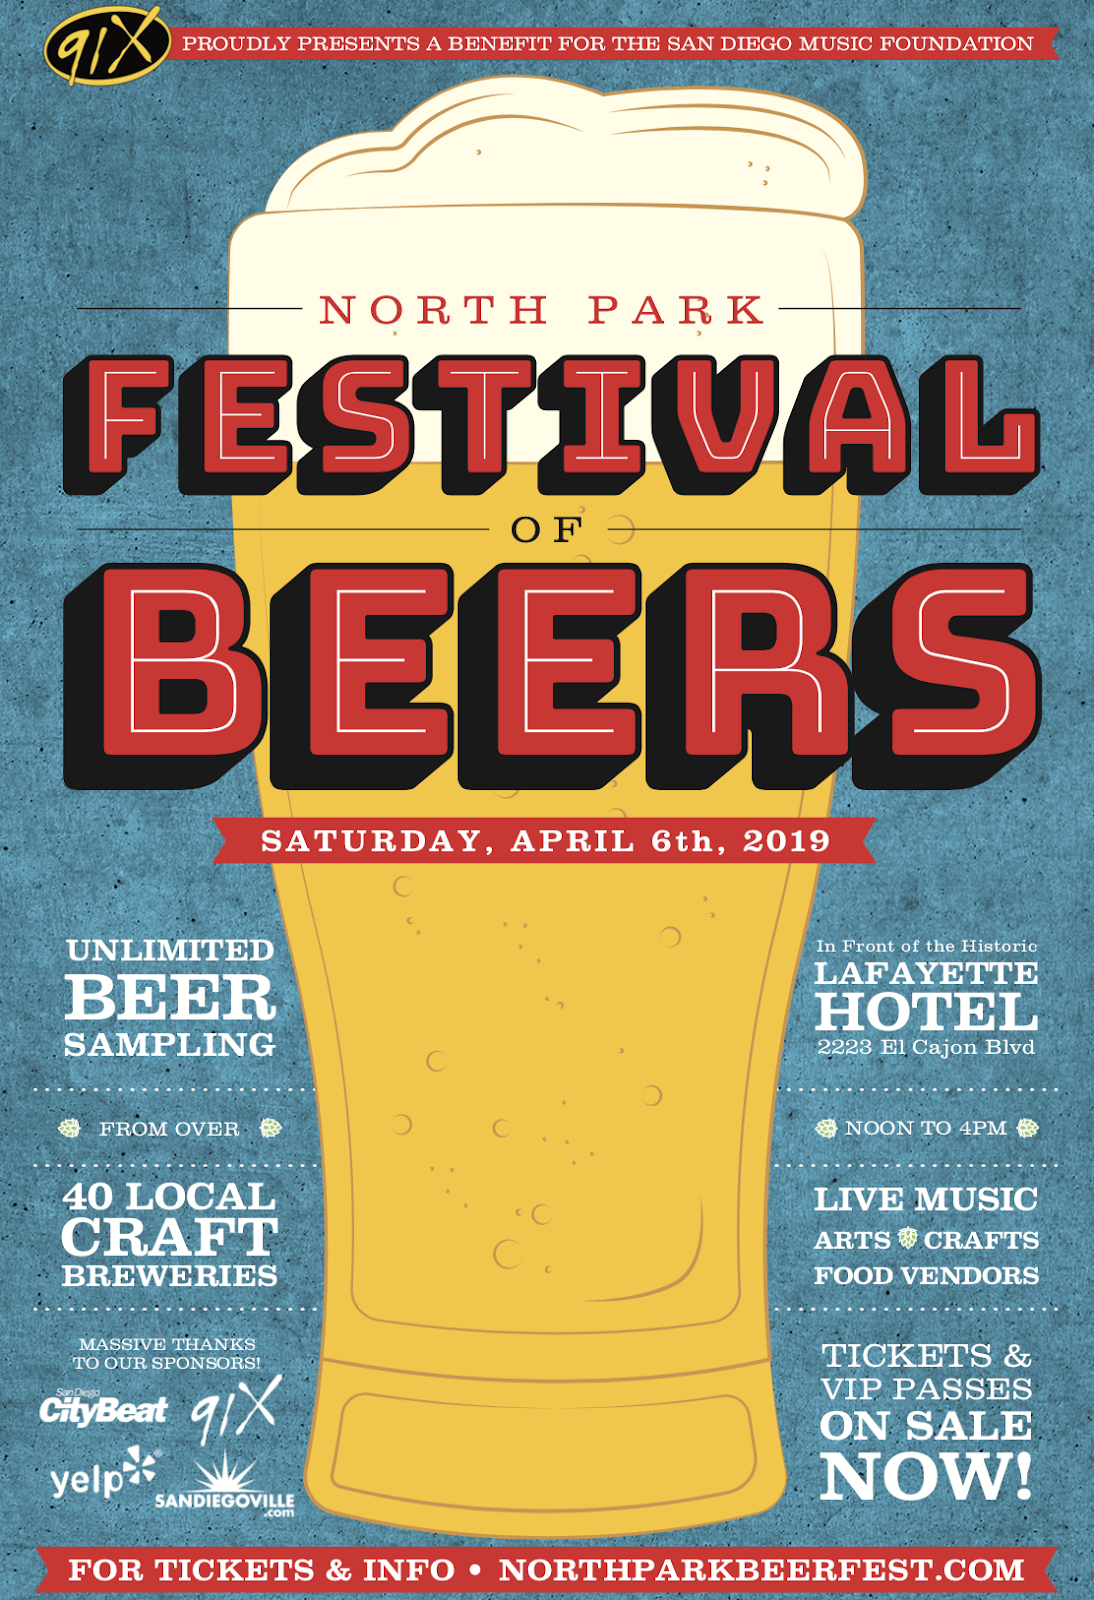 Save on passes & Enter to win VIP tickets to the North Park Festival of Beers - April 6!